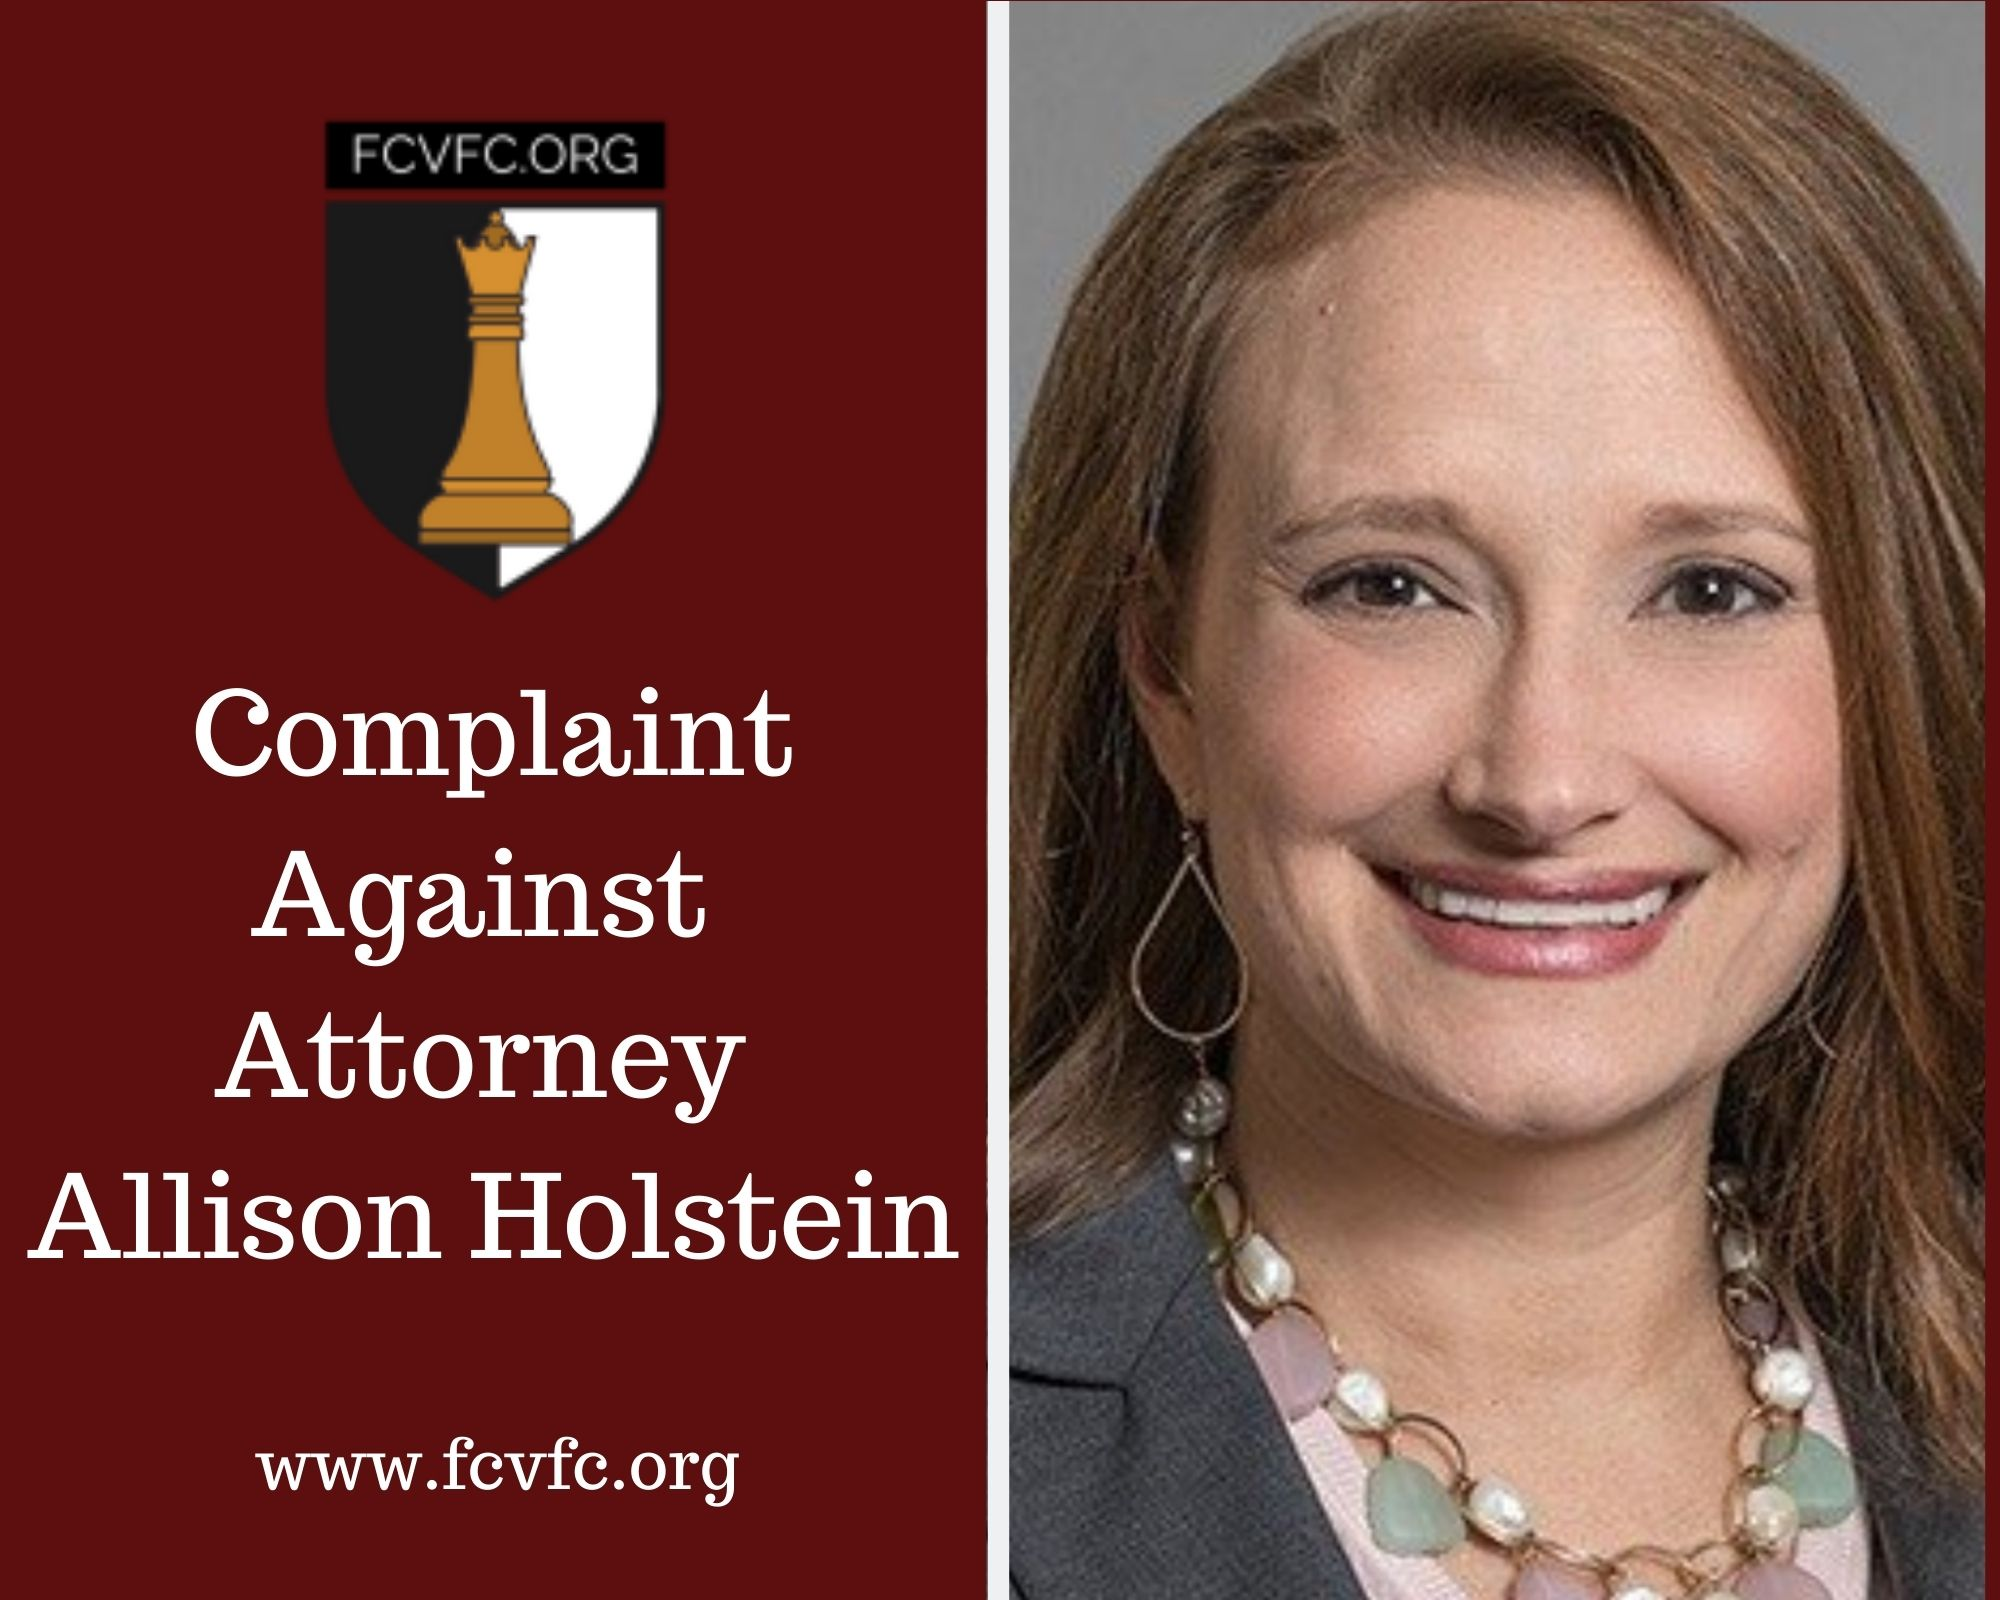 Complaint against Attorney Allison Holstein